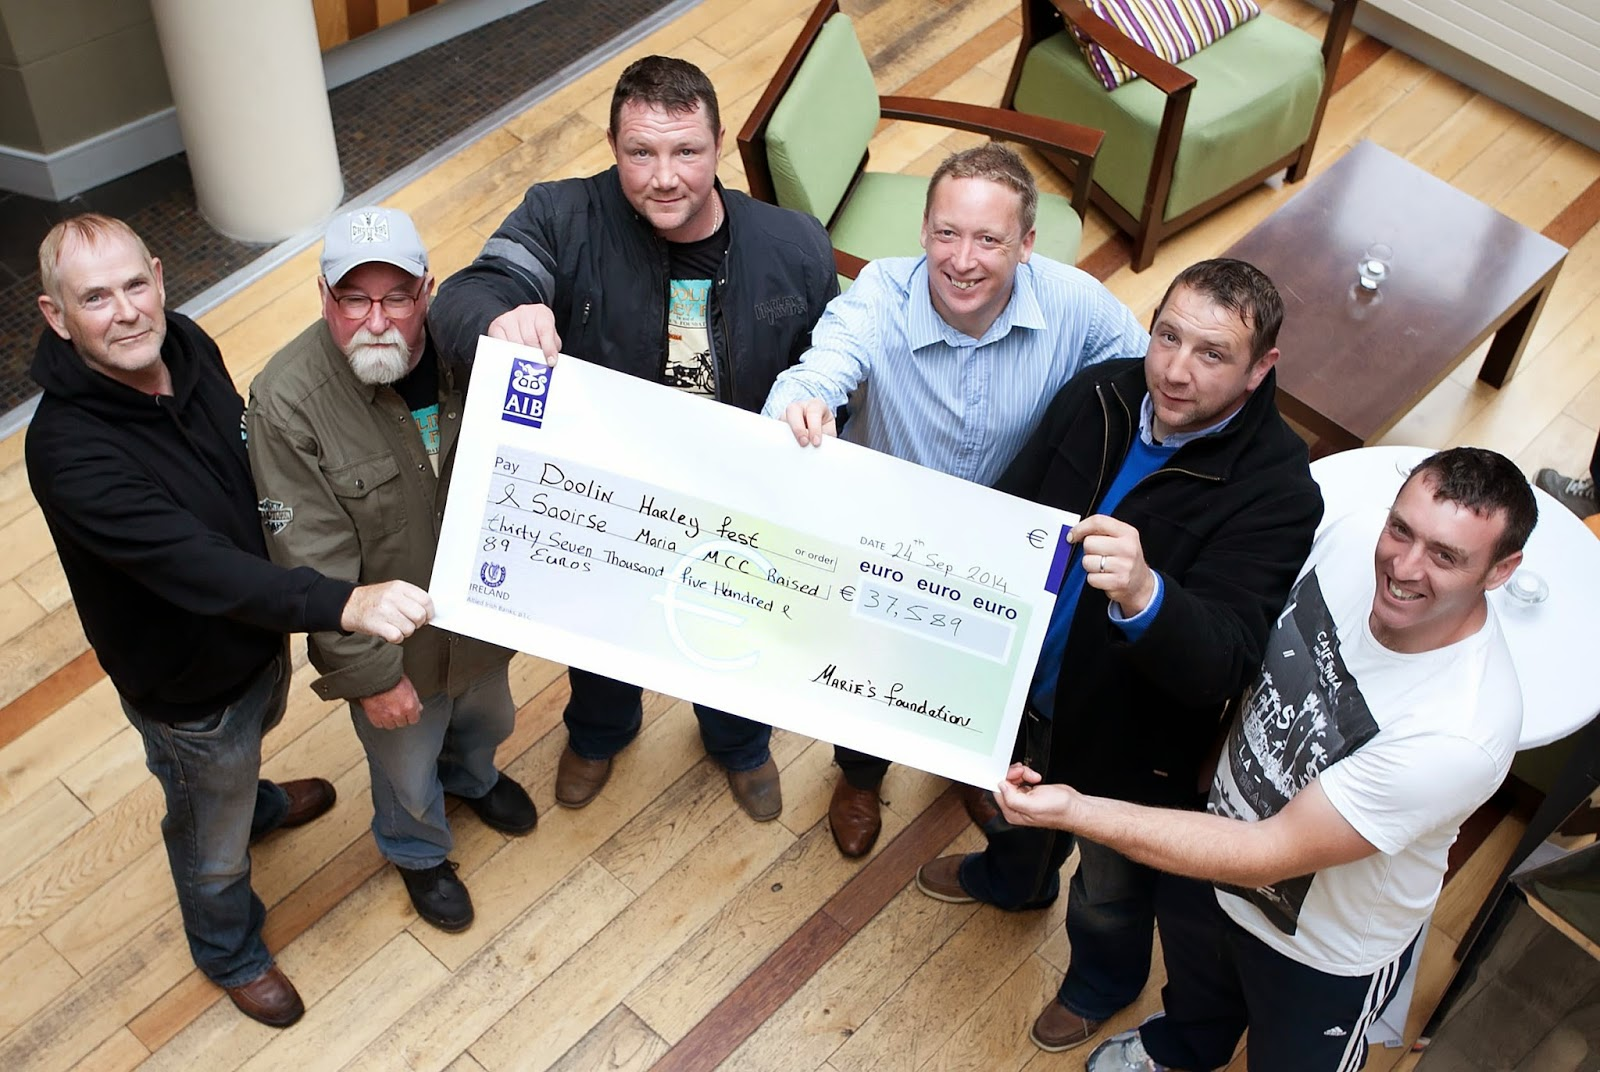 Doolin Harley Festival raises over 37K euro for cancer charities